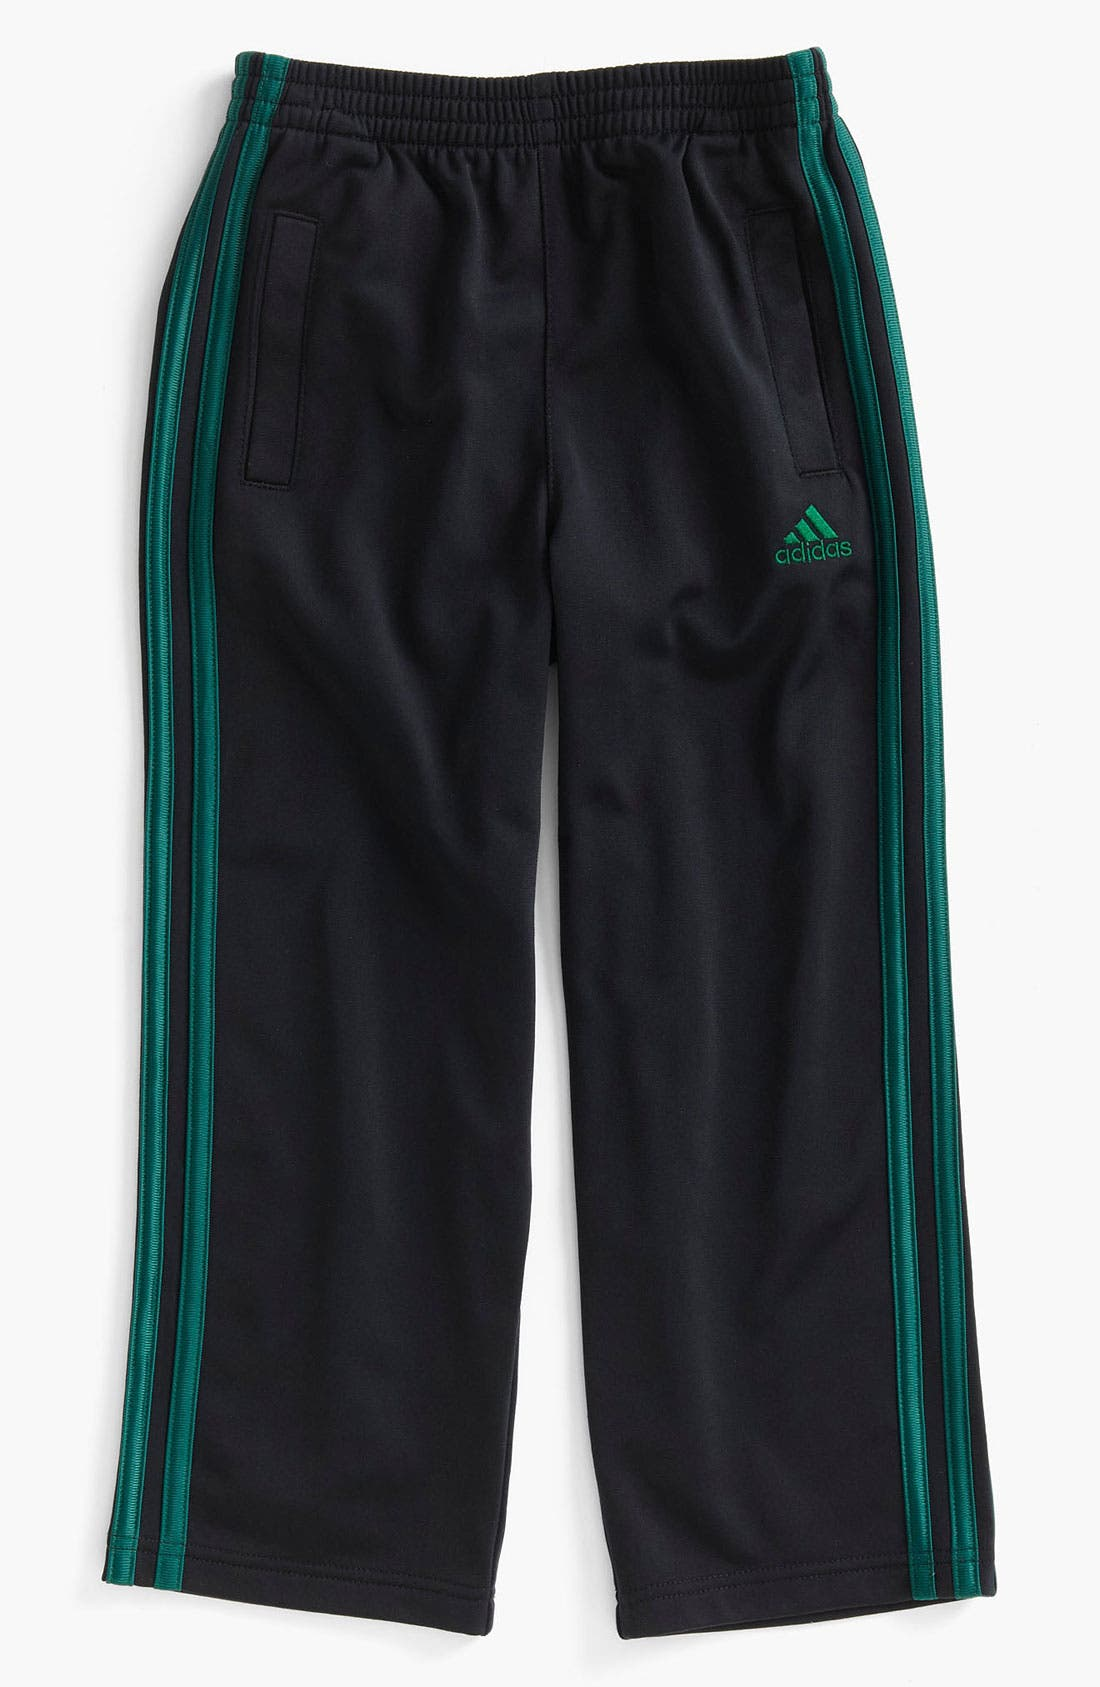 Main Image - adidas Tricot Pants (Little Boys)